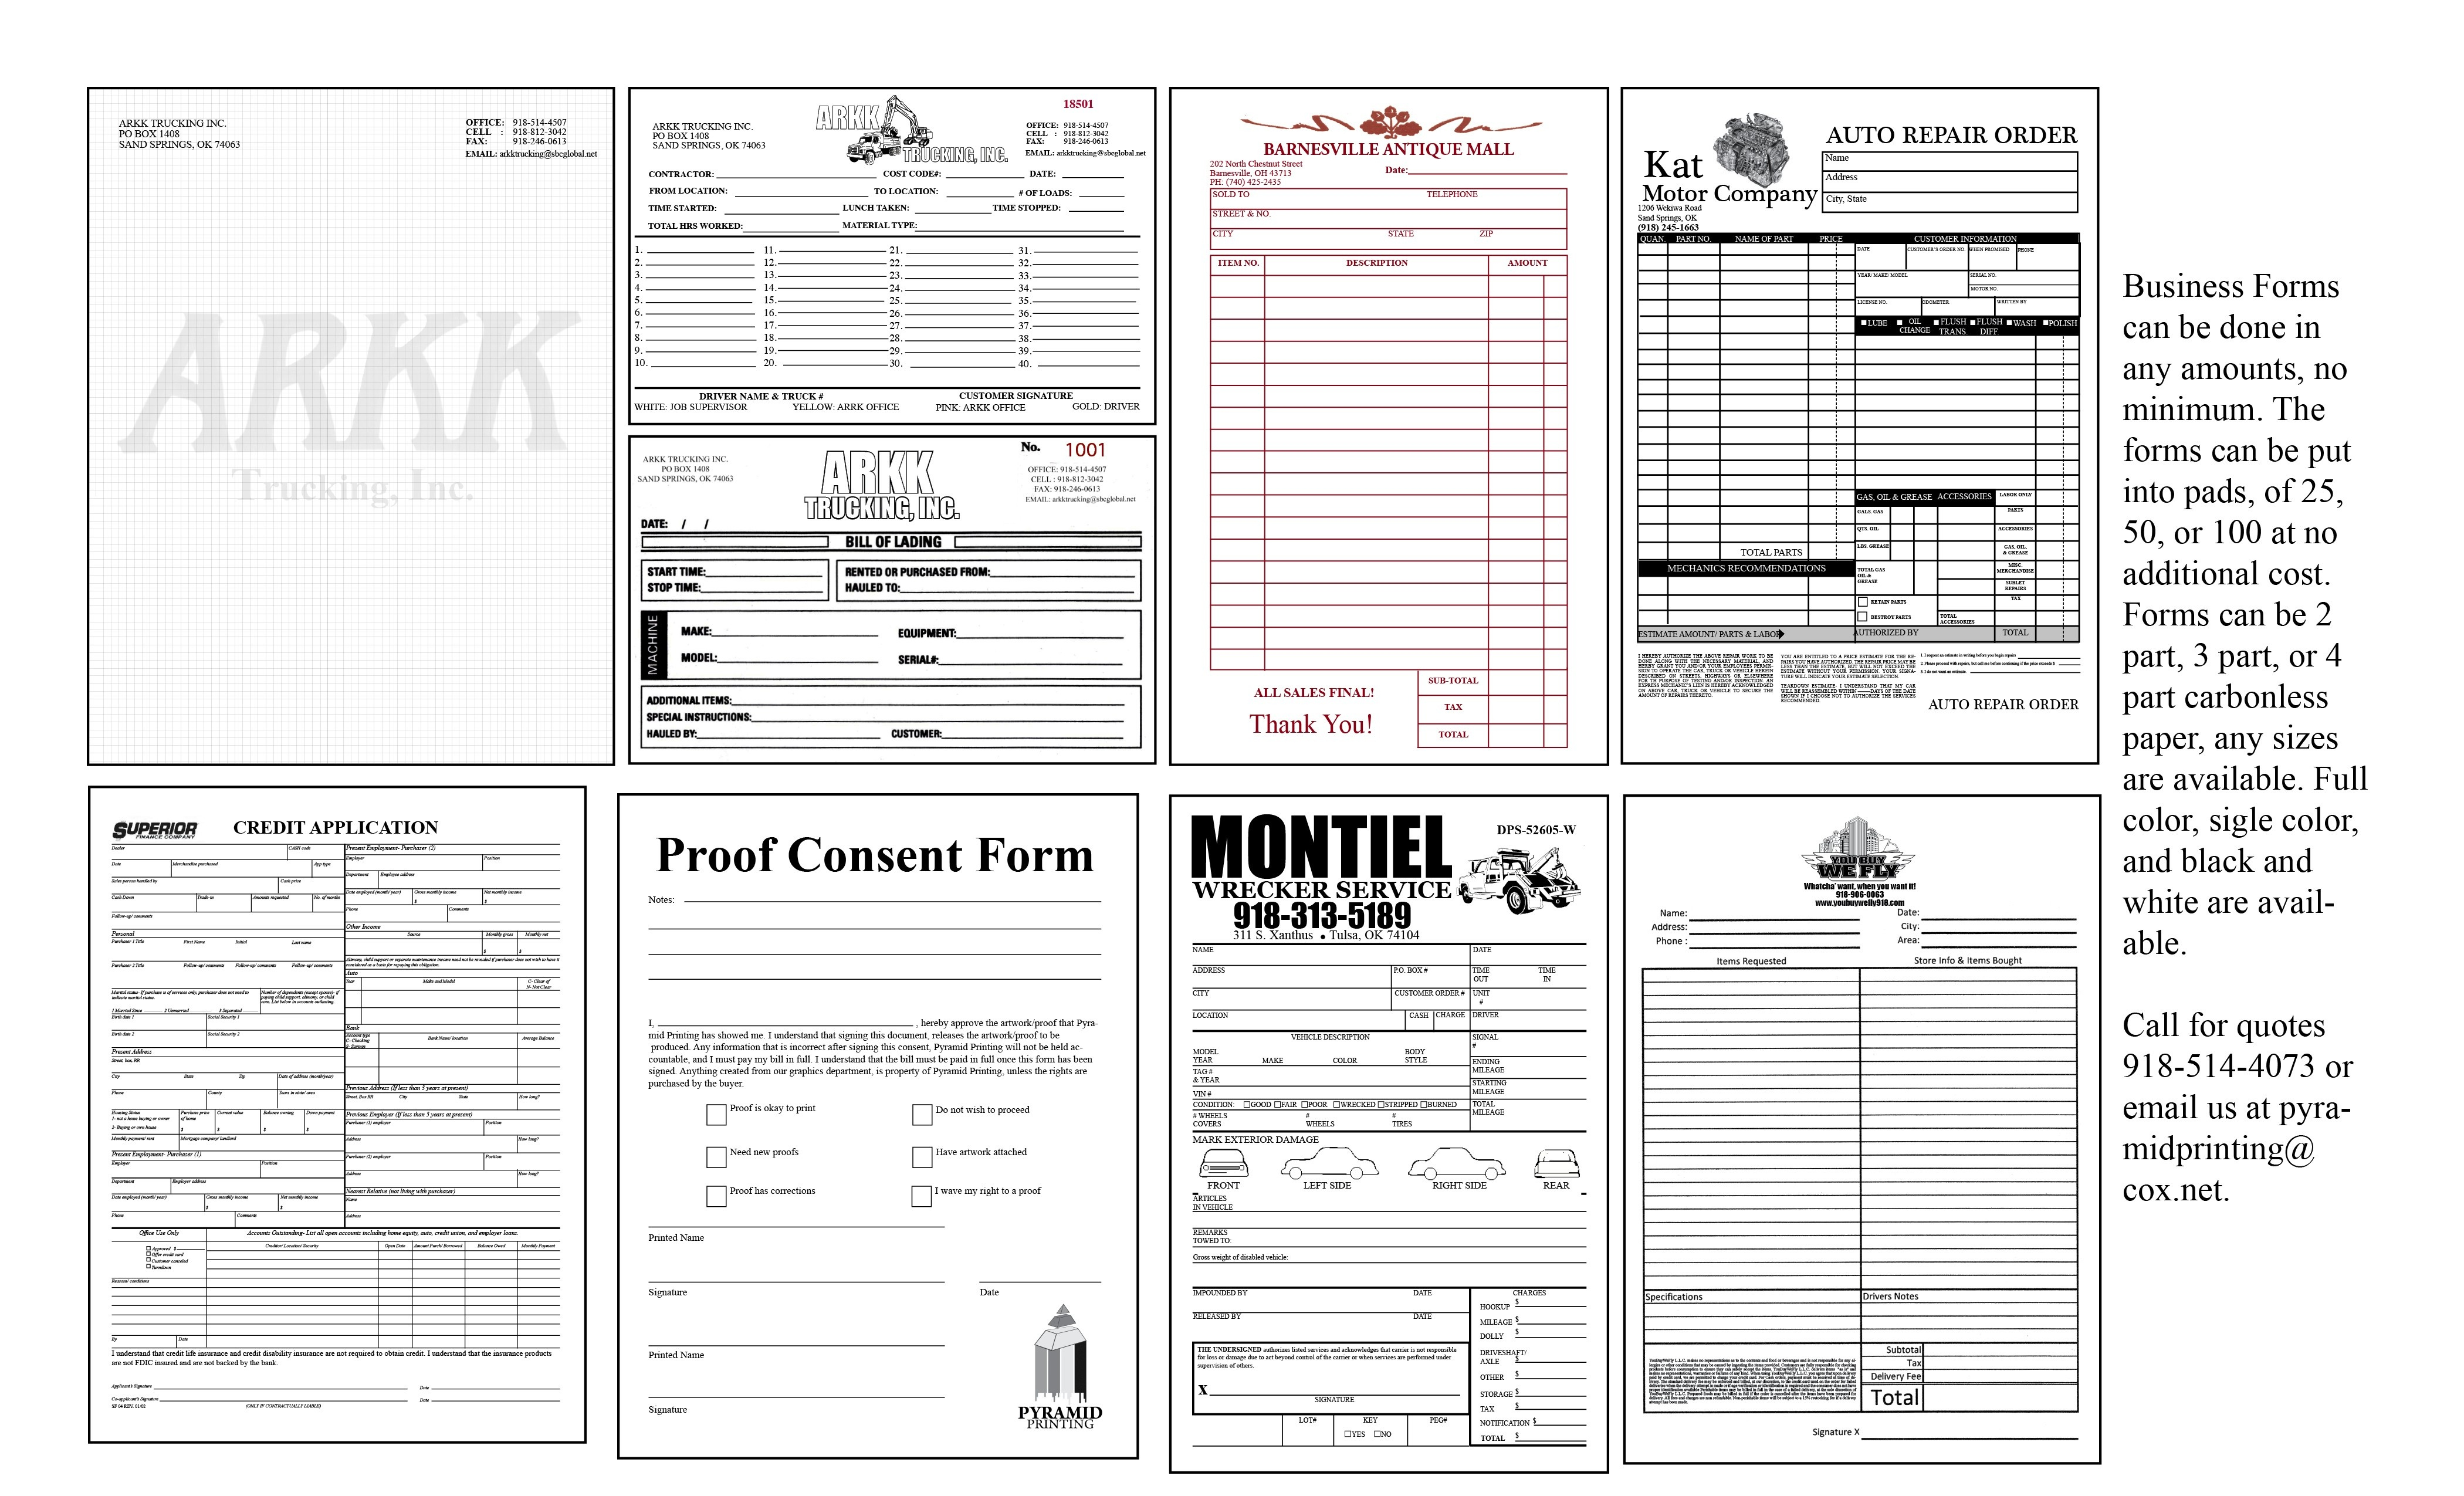 Free Business Forms Printable | Room Surf - Free Printable Business Forms